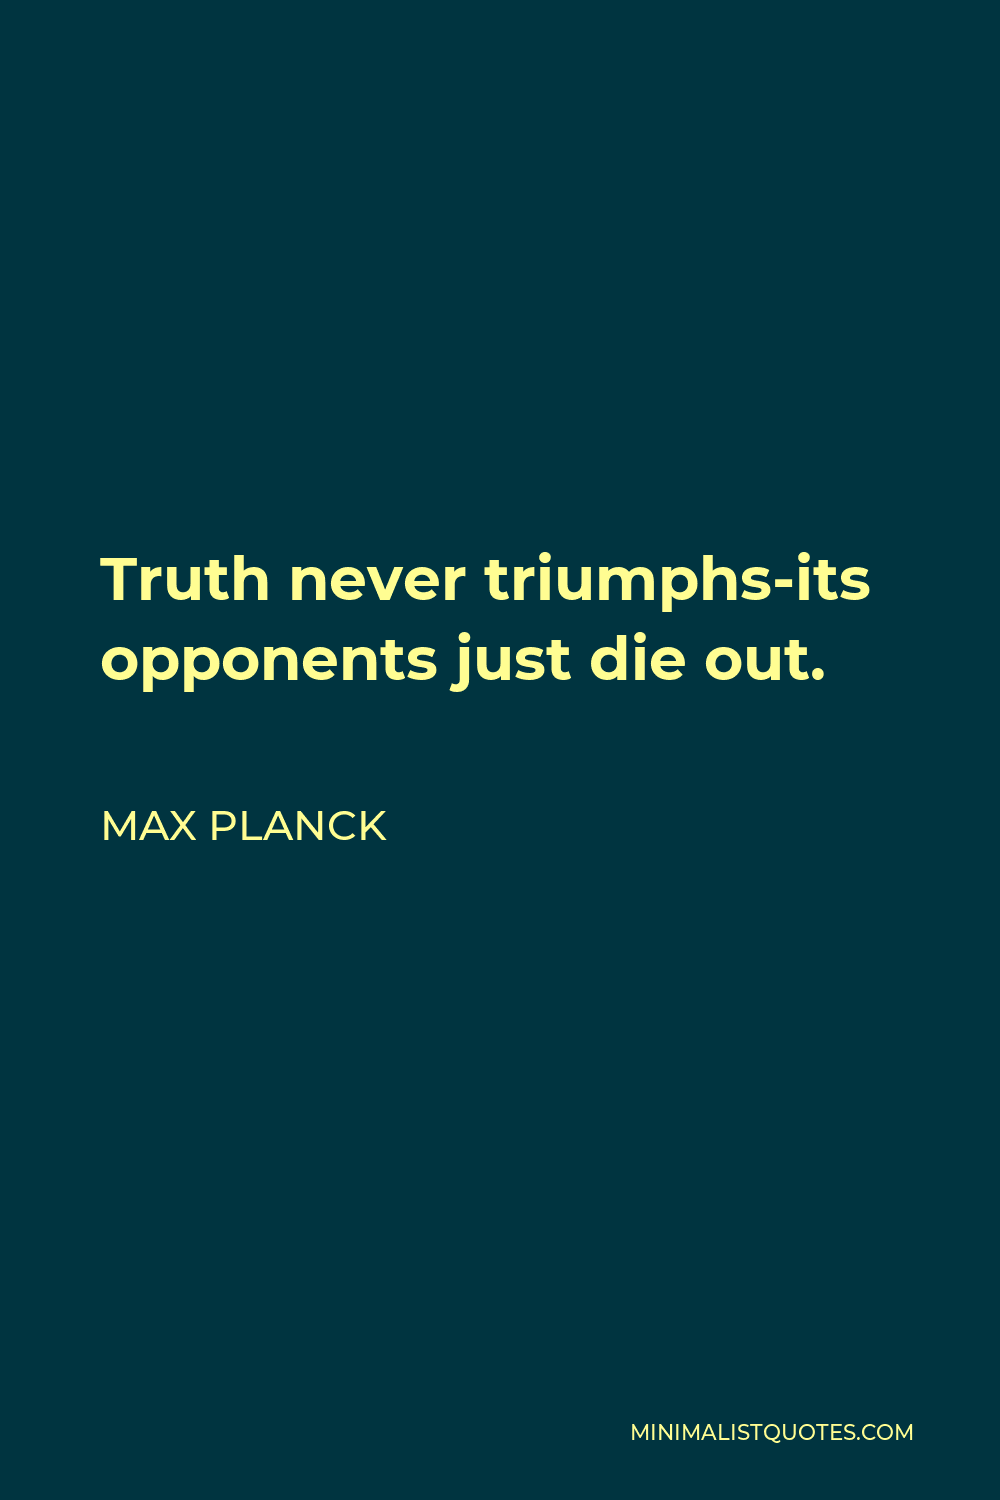 Max Planck Quote - Truth never triumphs-its opponents just die out.